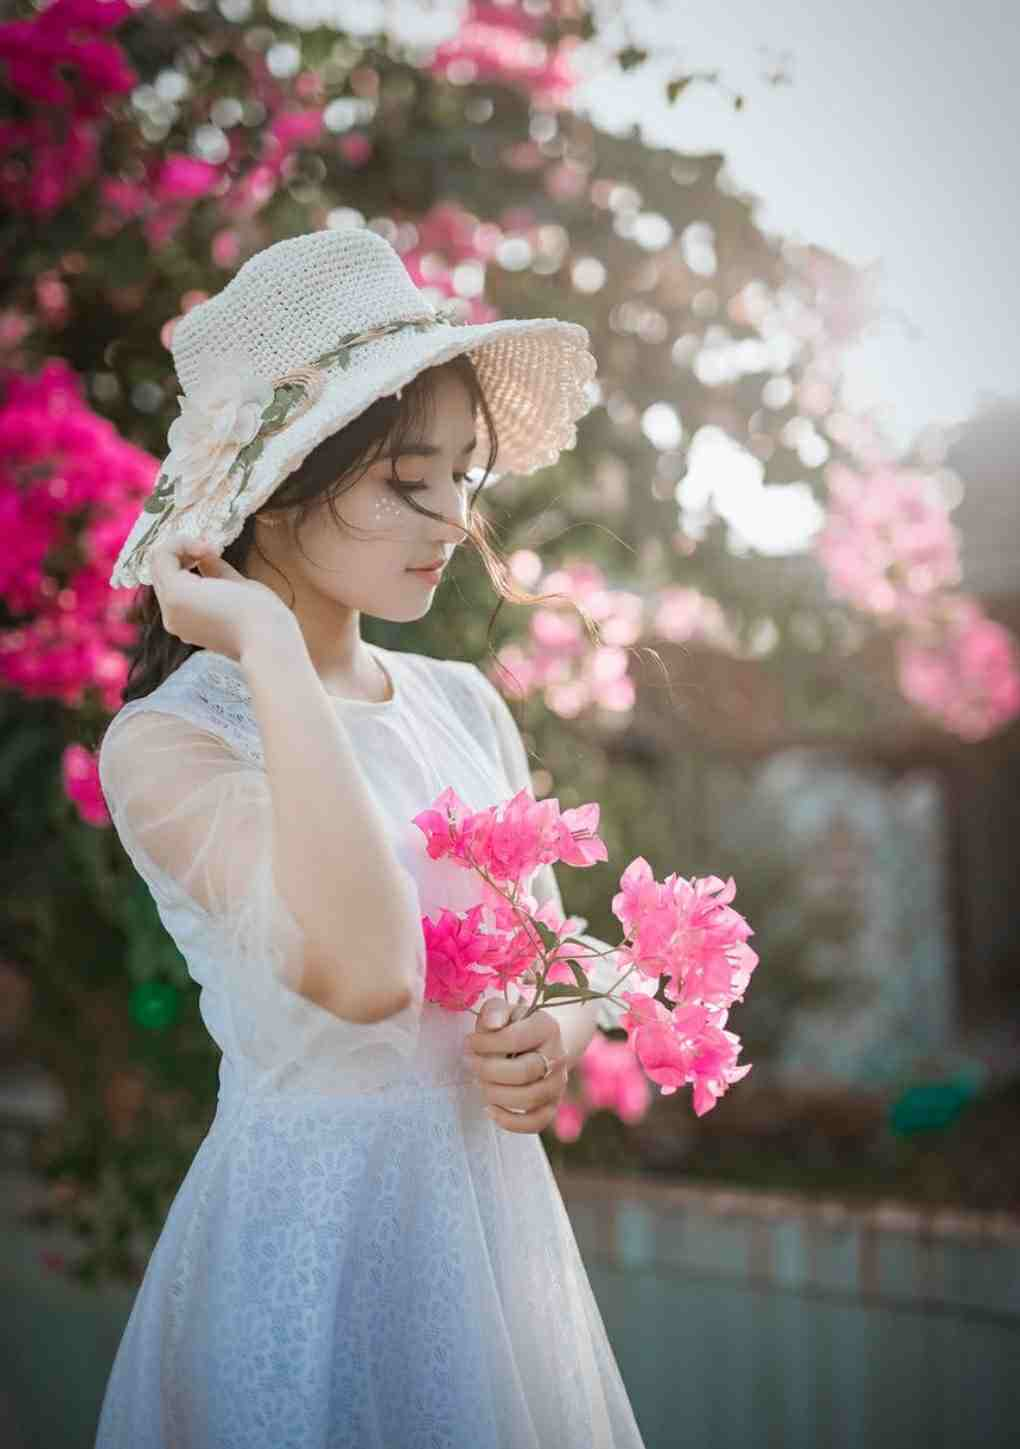 tips for preparing flower girl